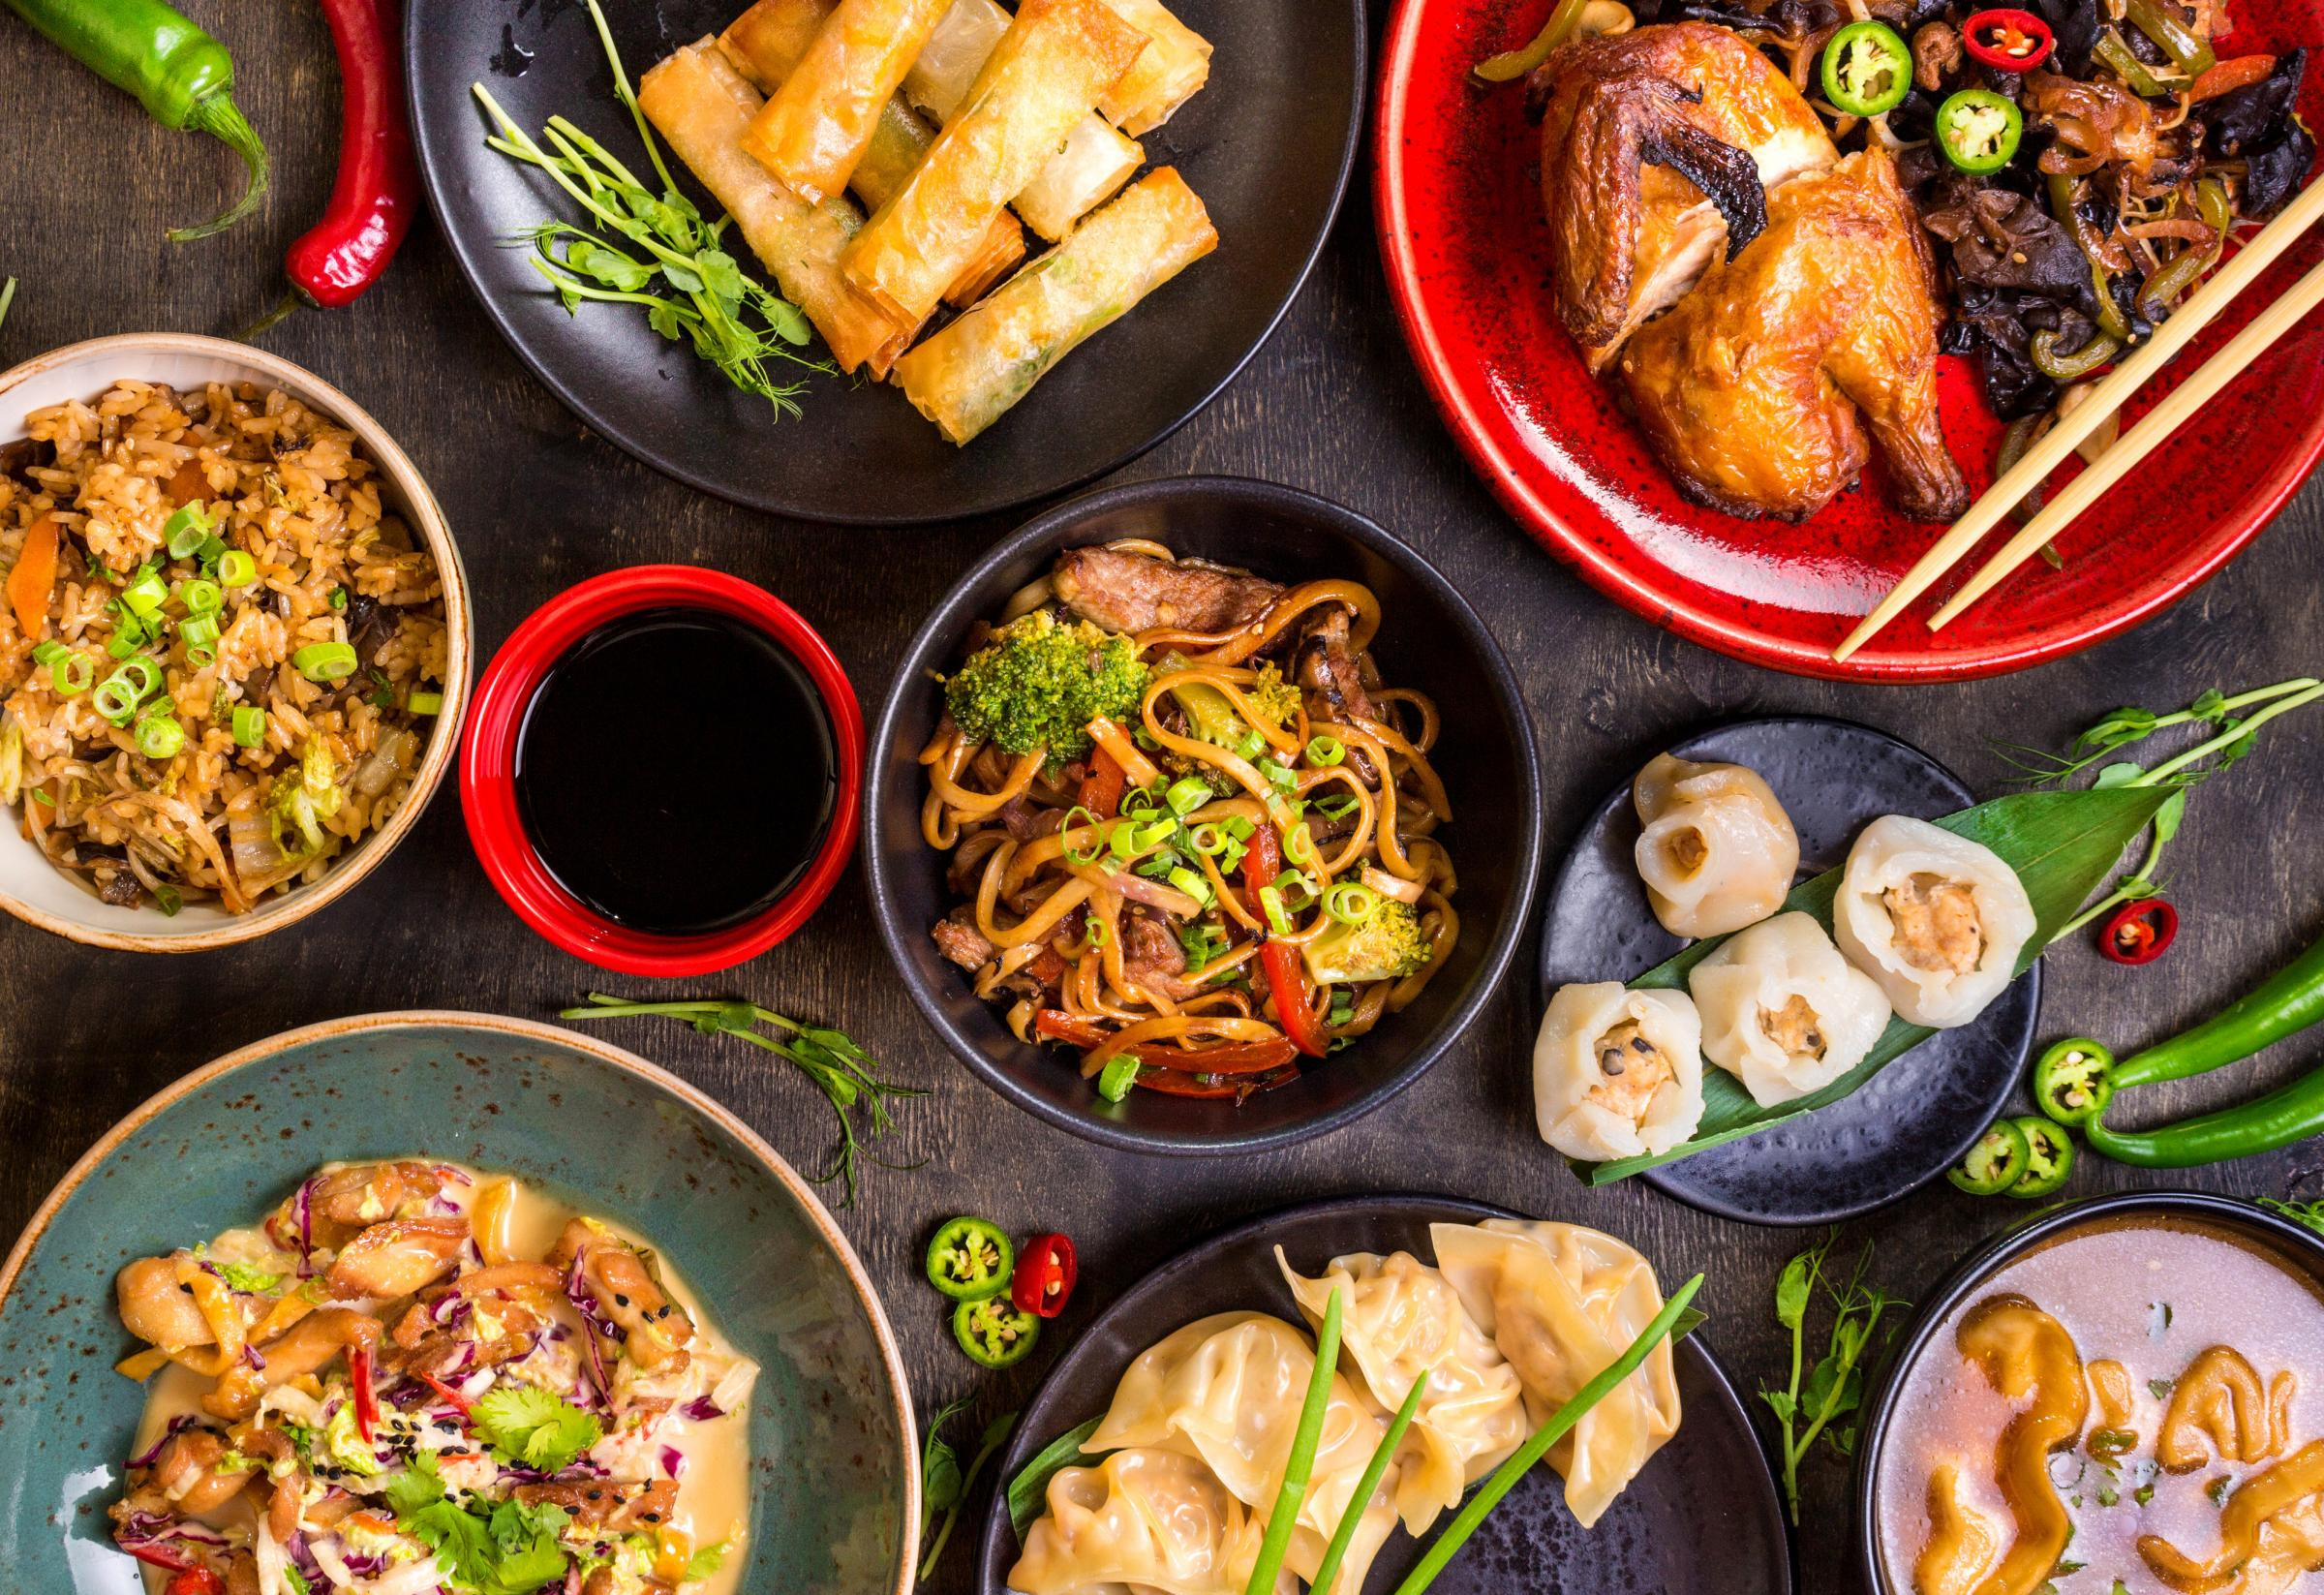 Assorted Chinese food set. Chinese noodles, fried rice, dumplings, peking duck, dim sum, spring rolls. Famous Chinese cuisine dishes on table. Top view. Chinese restaurant concept. Asian style banquet.